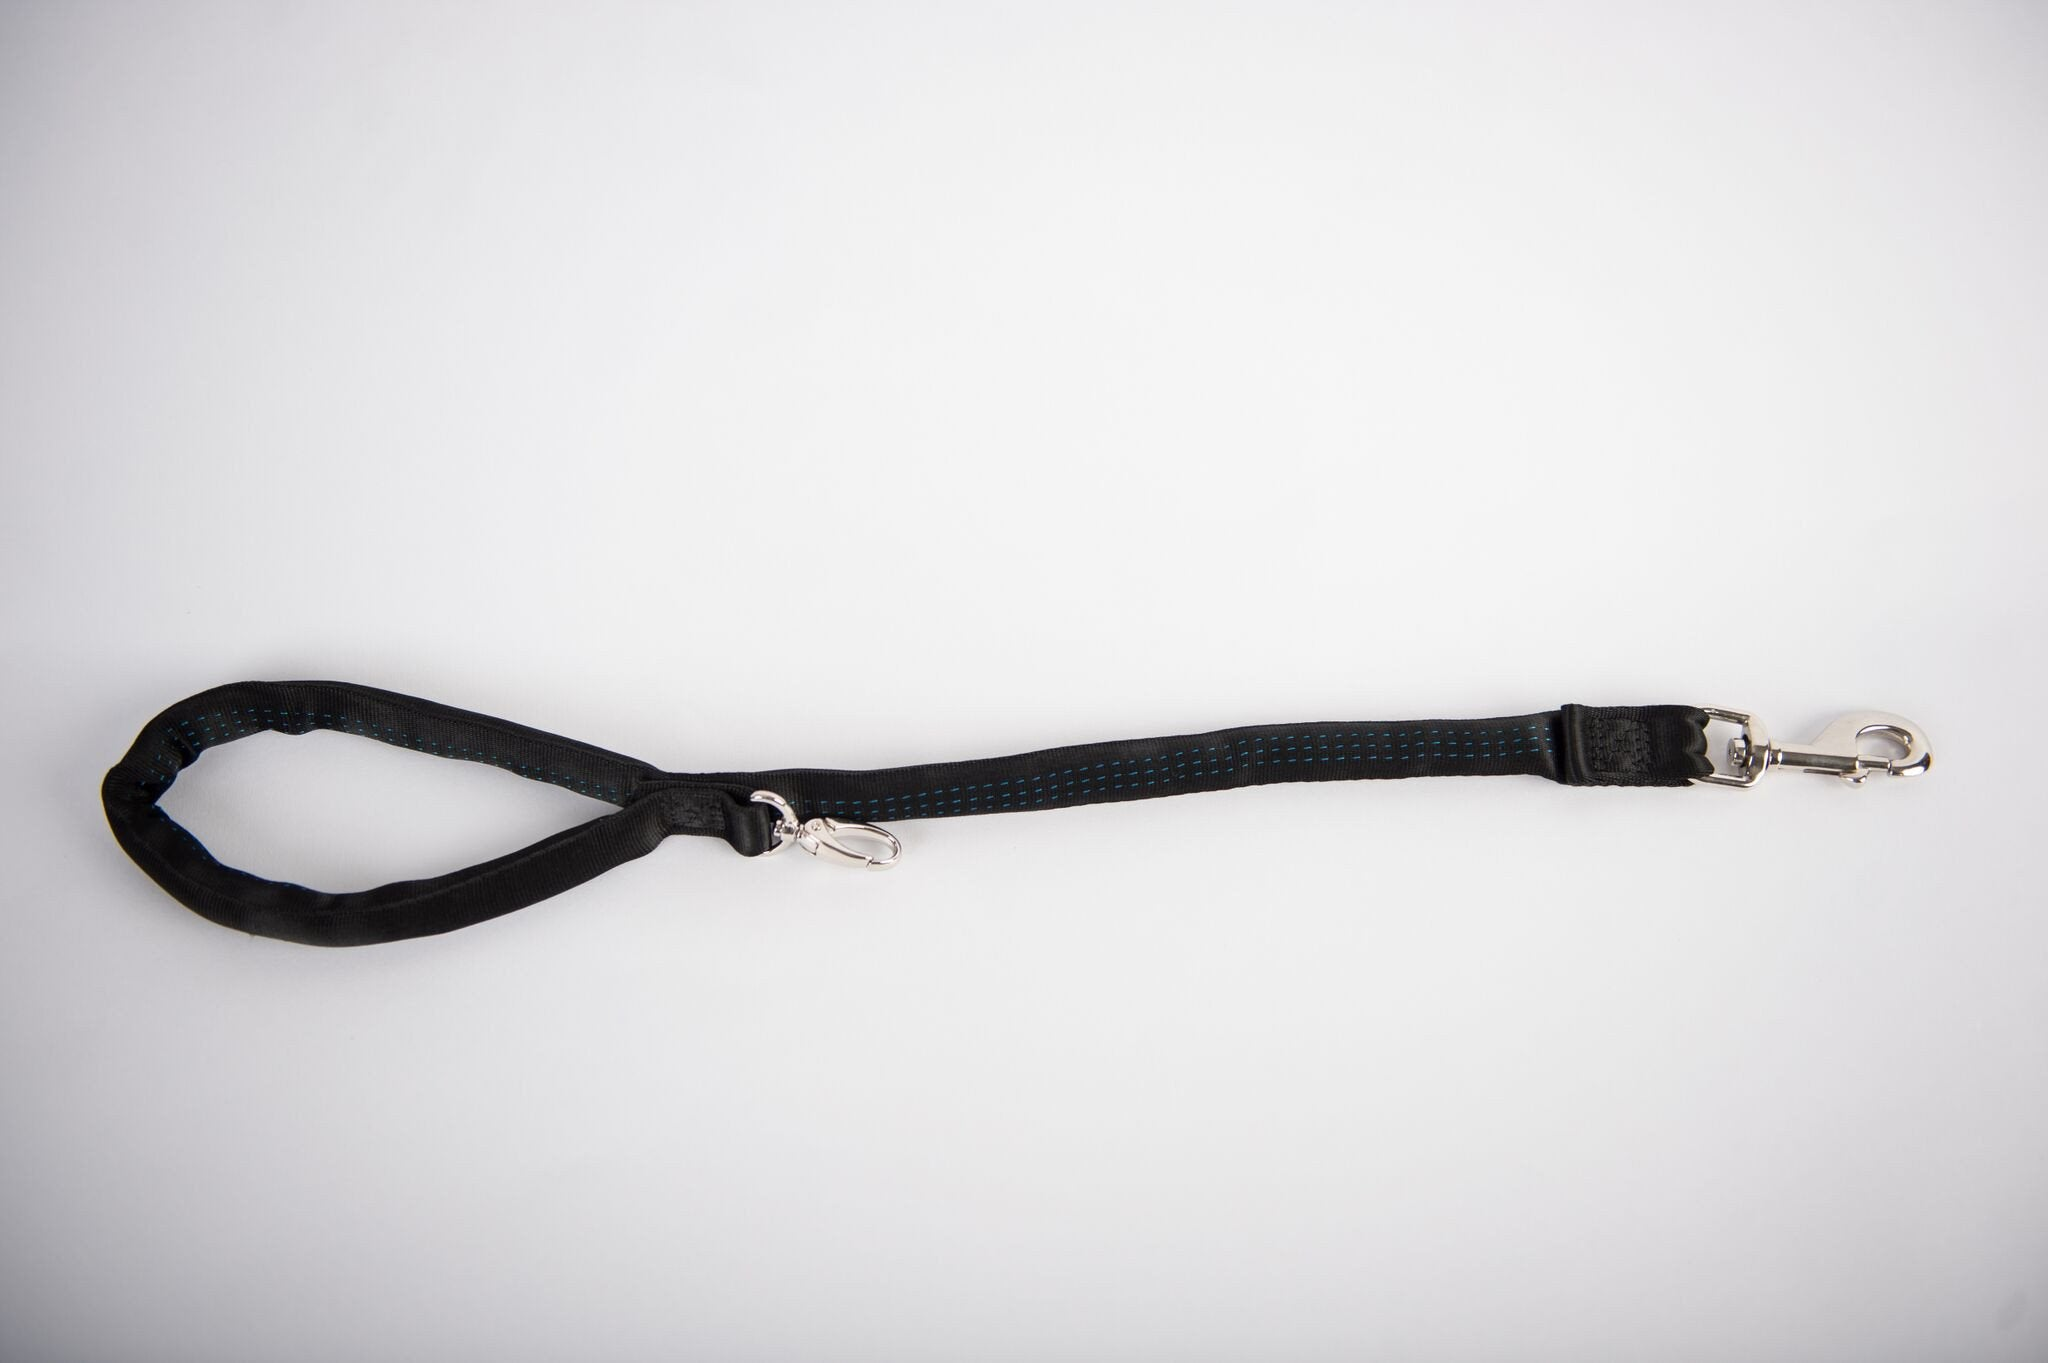 Black-Luv My Leash, 2-6 Foot option ,Lightweight, Padded,Dual Snap, 5 Leashes in 1 ,Made in U.S.A.